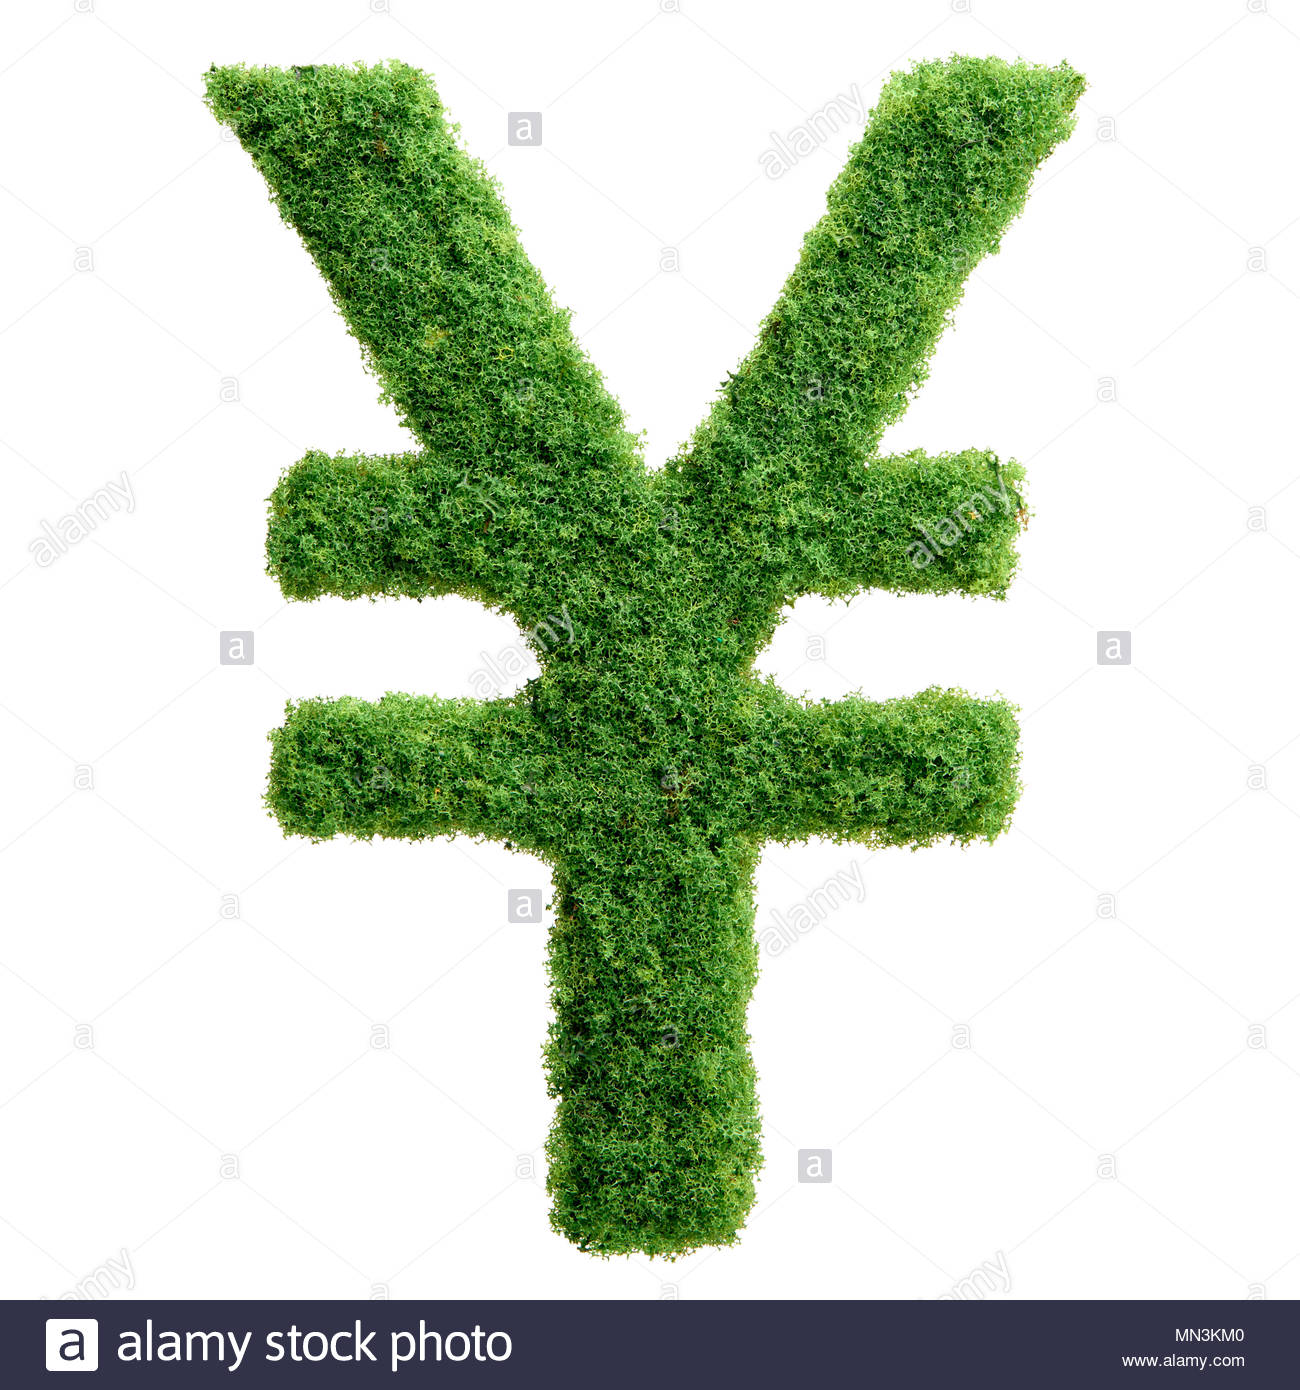 Grass growing in the shape of yen symbol. Clean eco friendly economy. - Stock Image